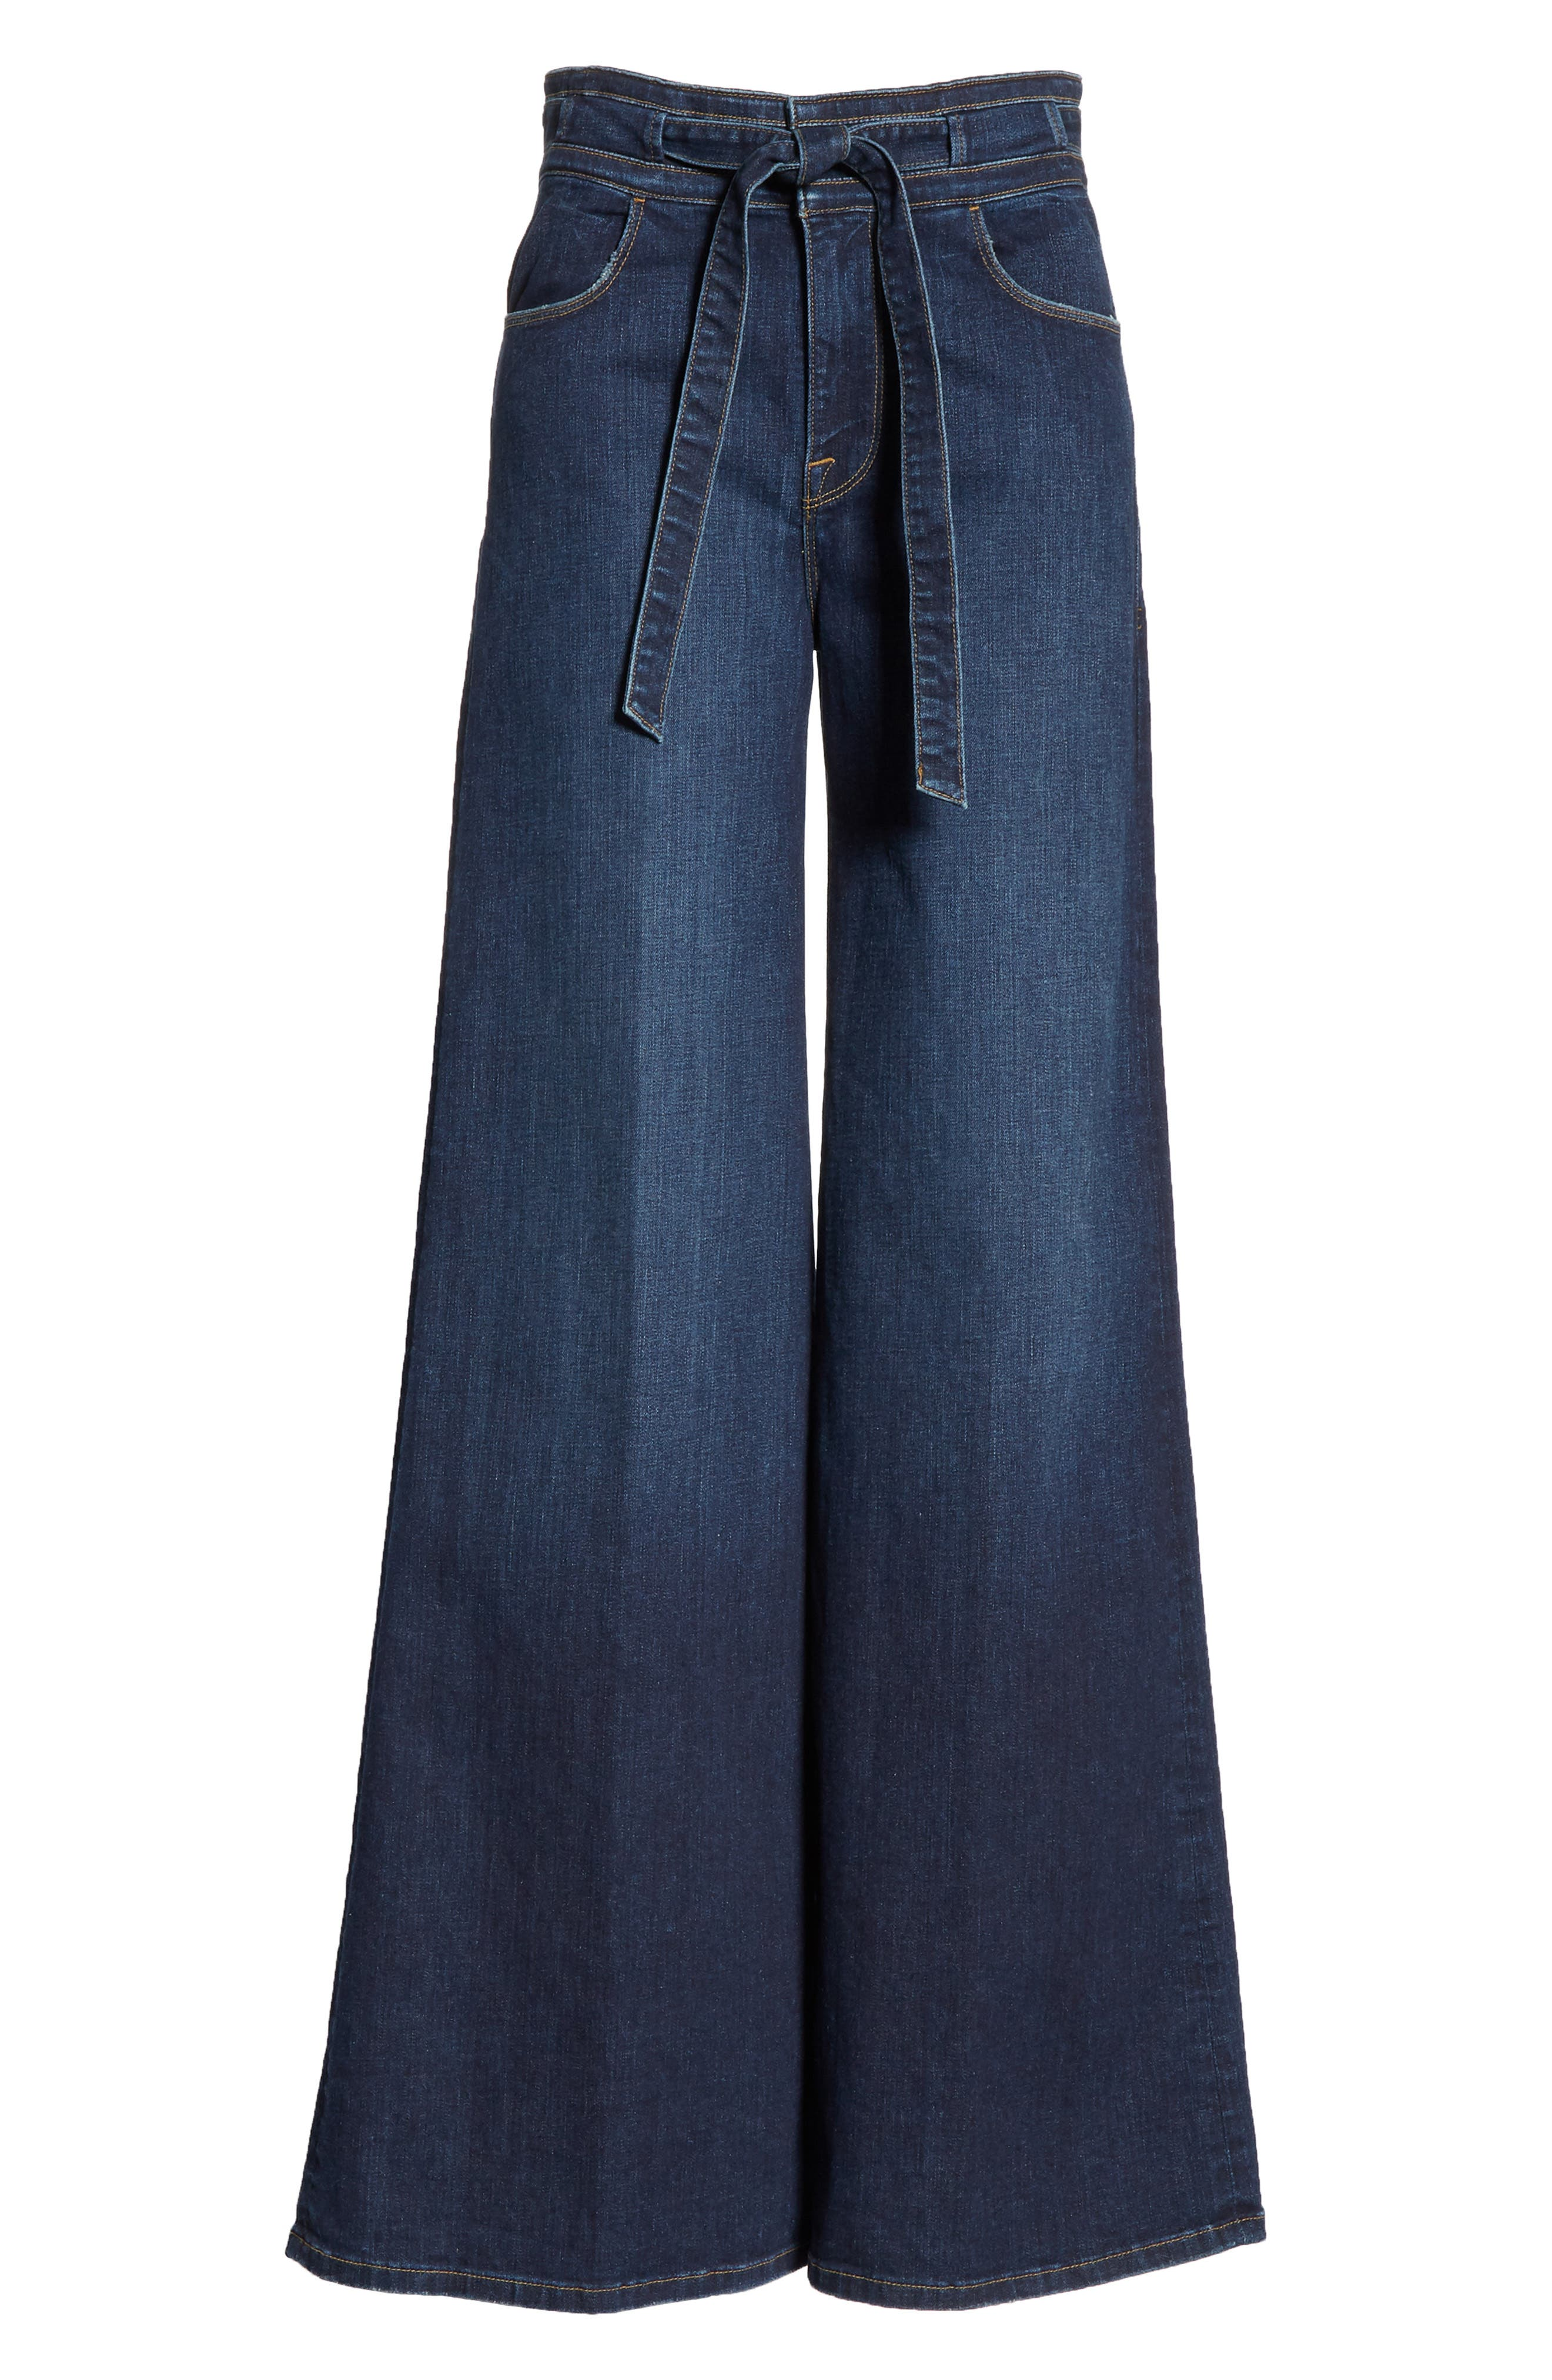 FRAME, Belted Palazzo Jeans, Alternate thumbnail 7, color, MERIBO